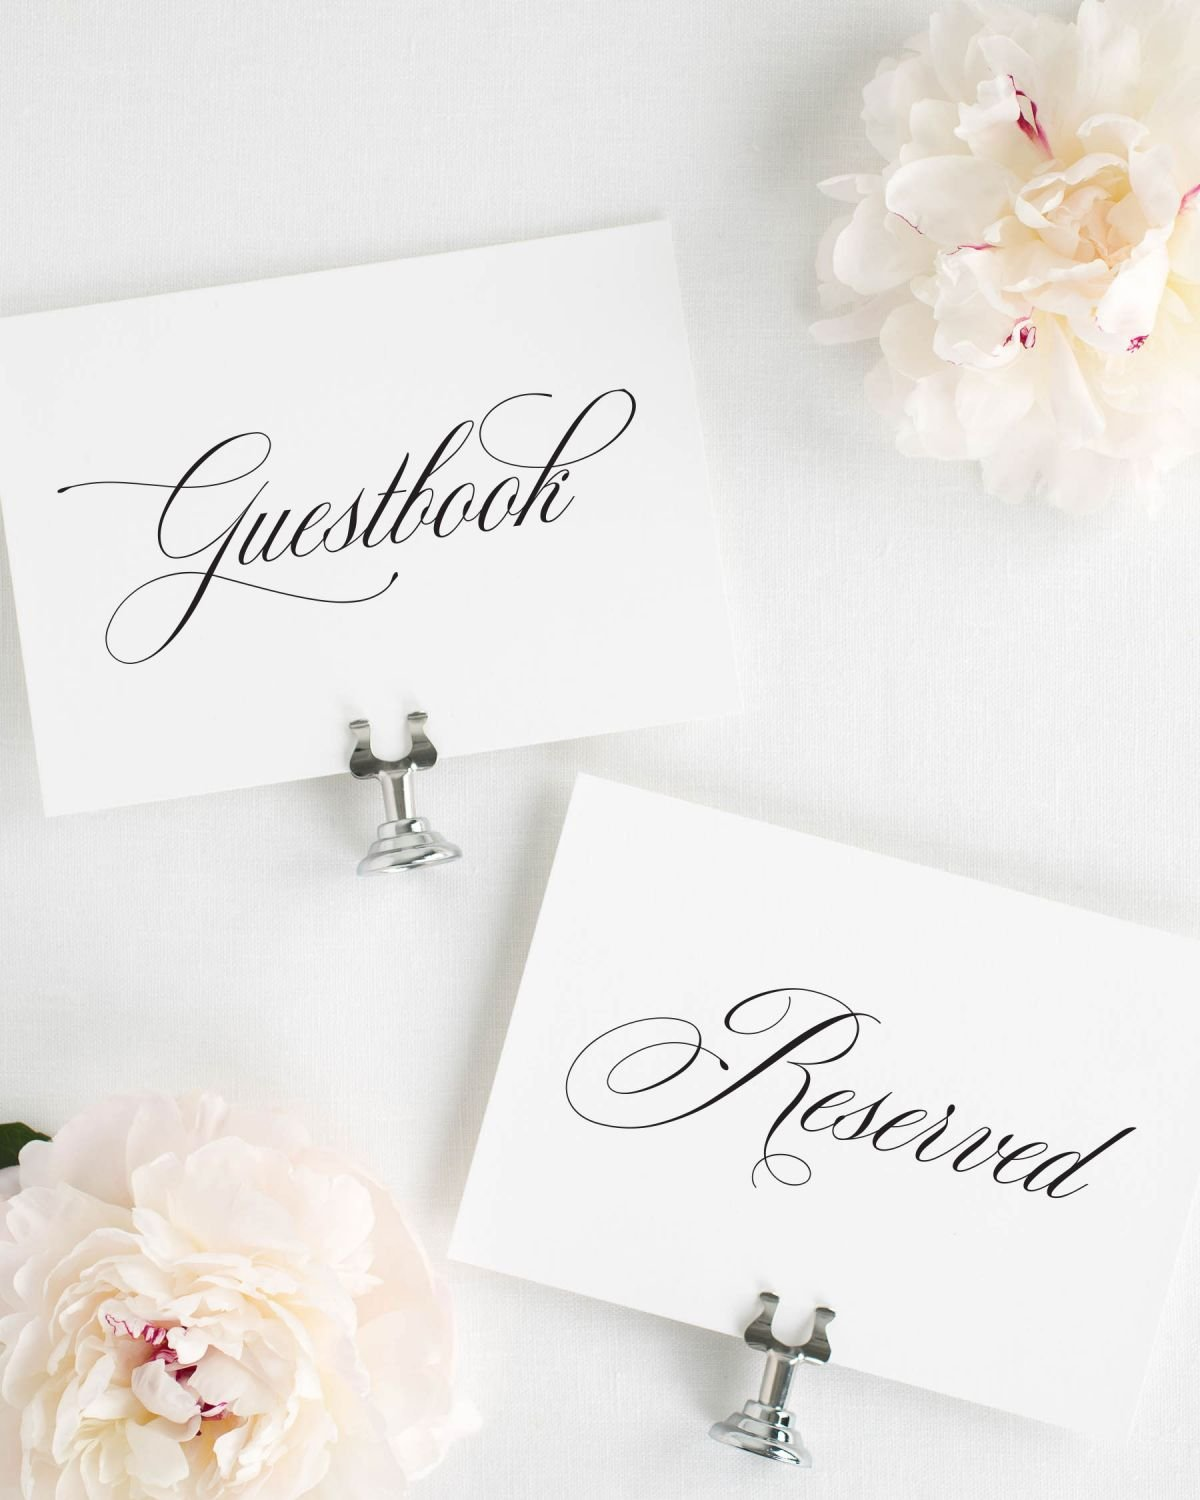 Reserved and Guestbook Signs for a Wedding